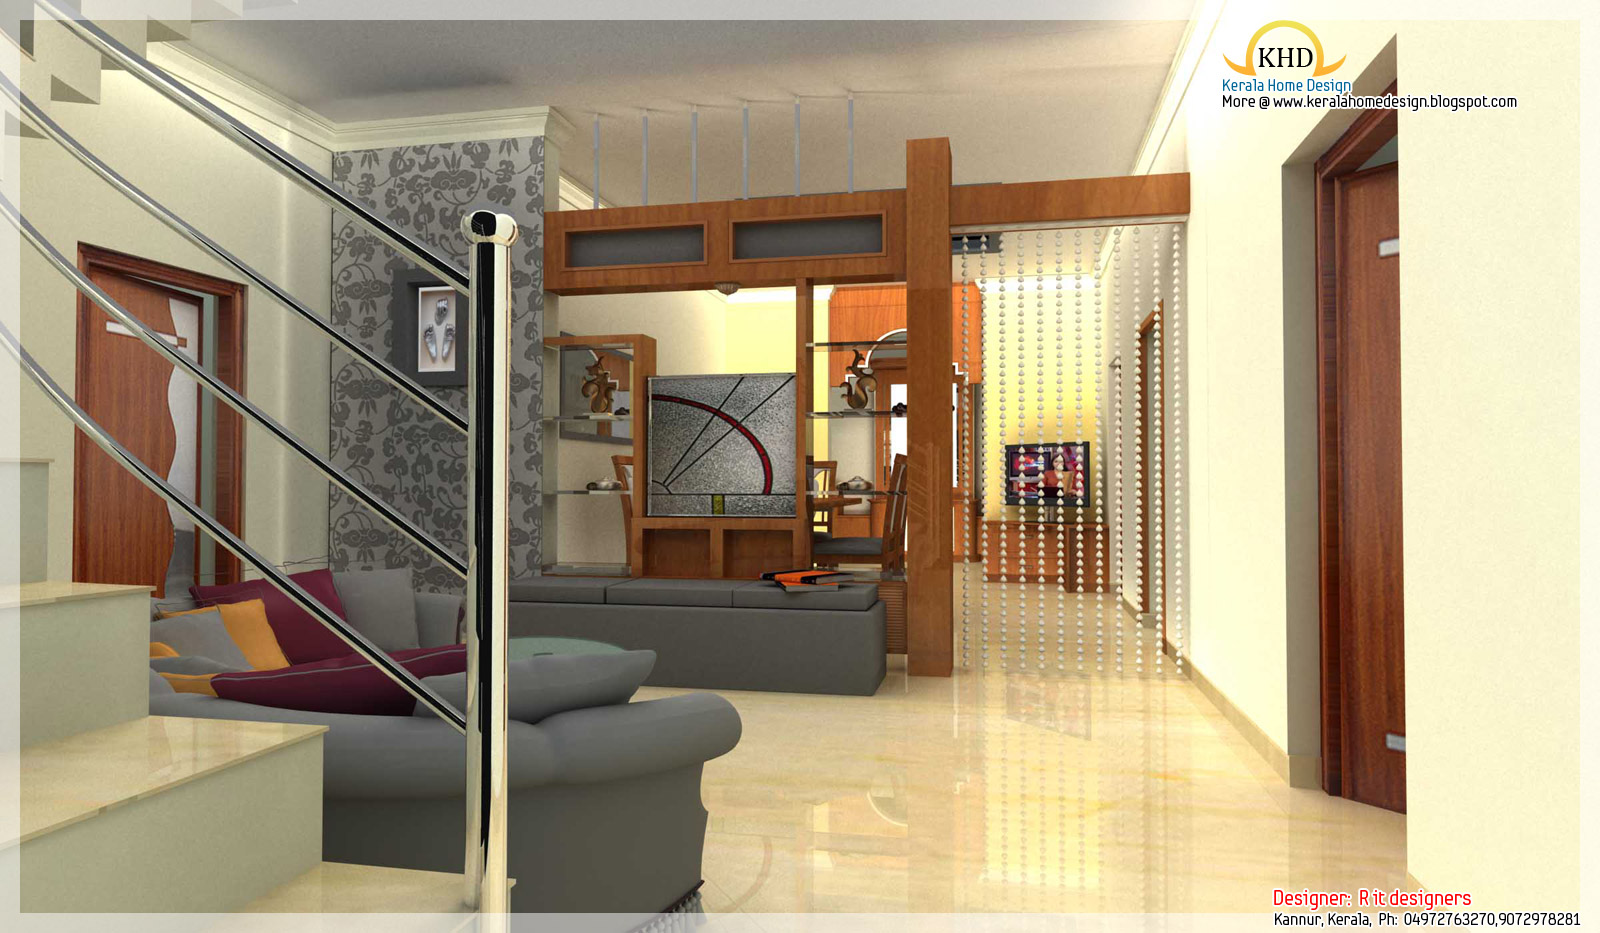 Interior design idea renderings kerala home design and for Interior designs com